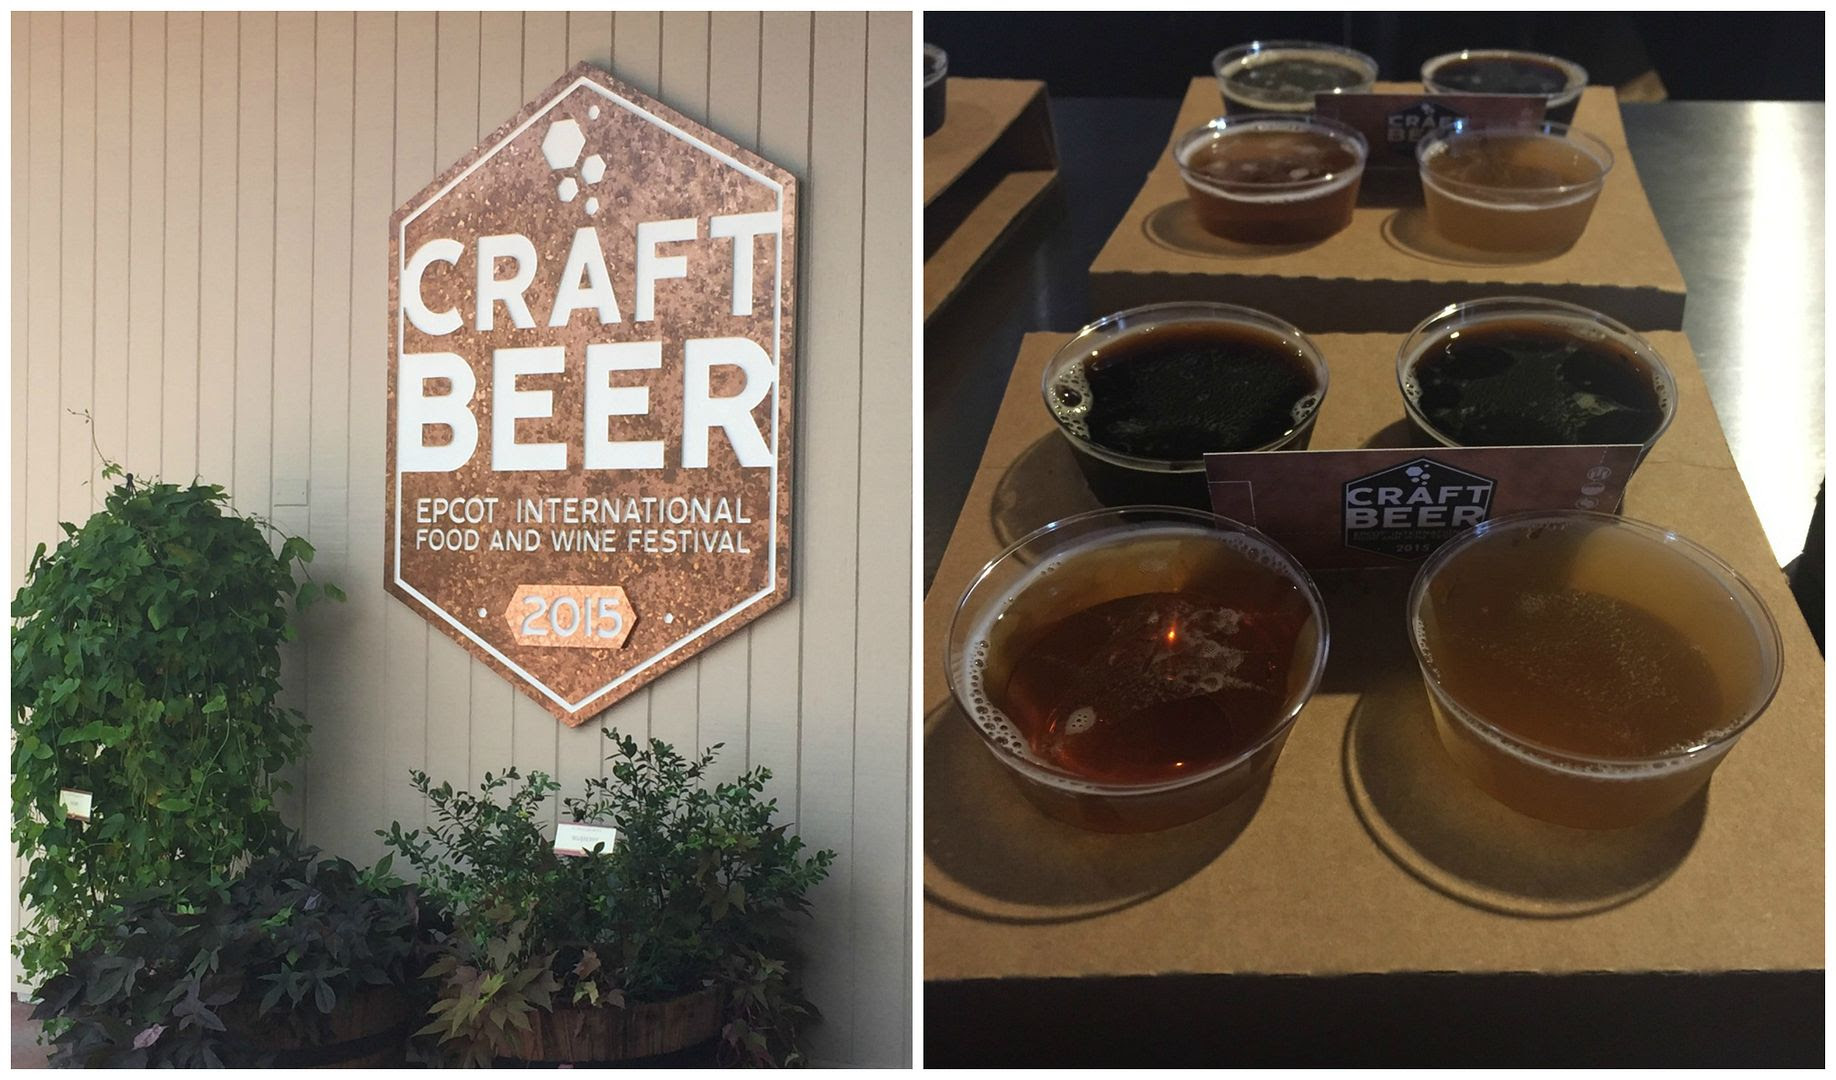 Craft Beer Epcot Food and Wine